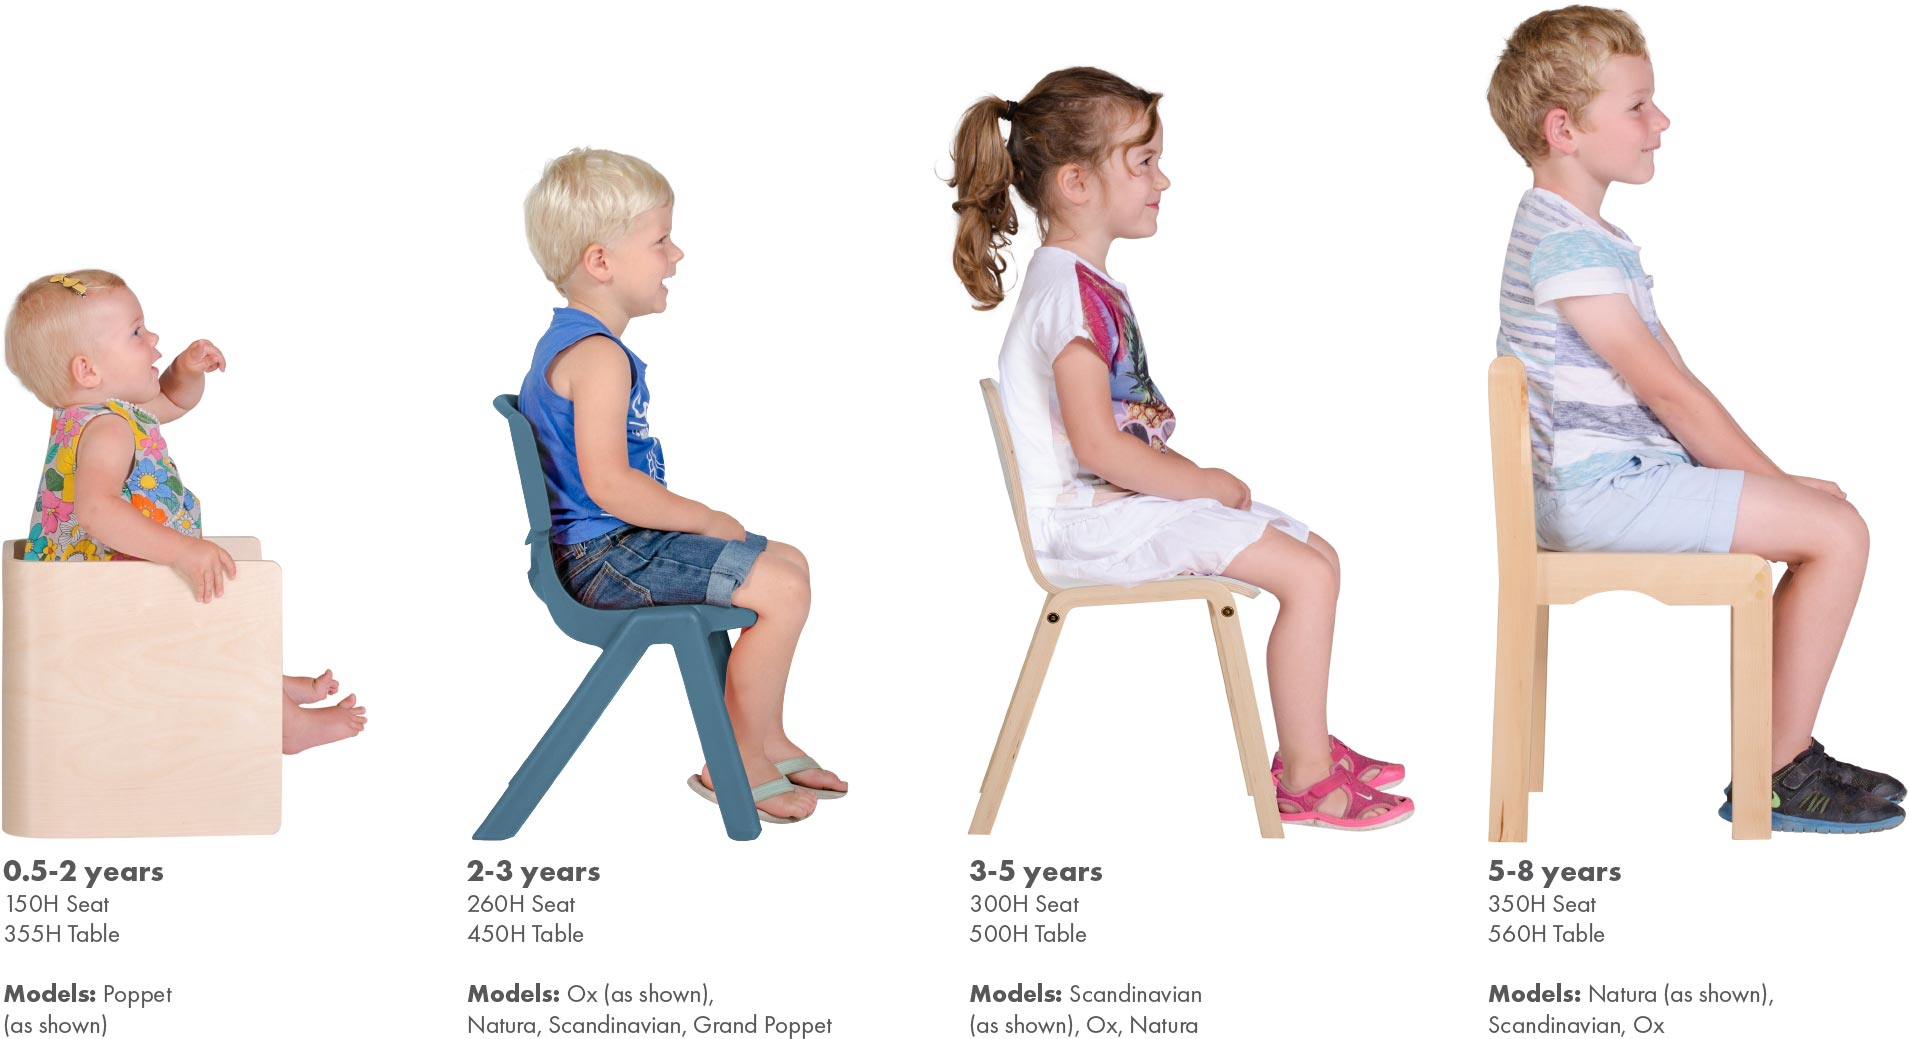 LSG age size guide for chairs